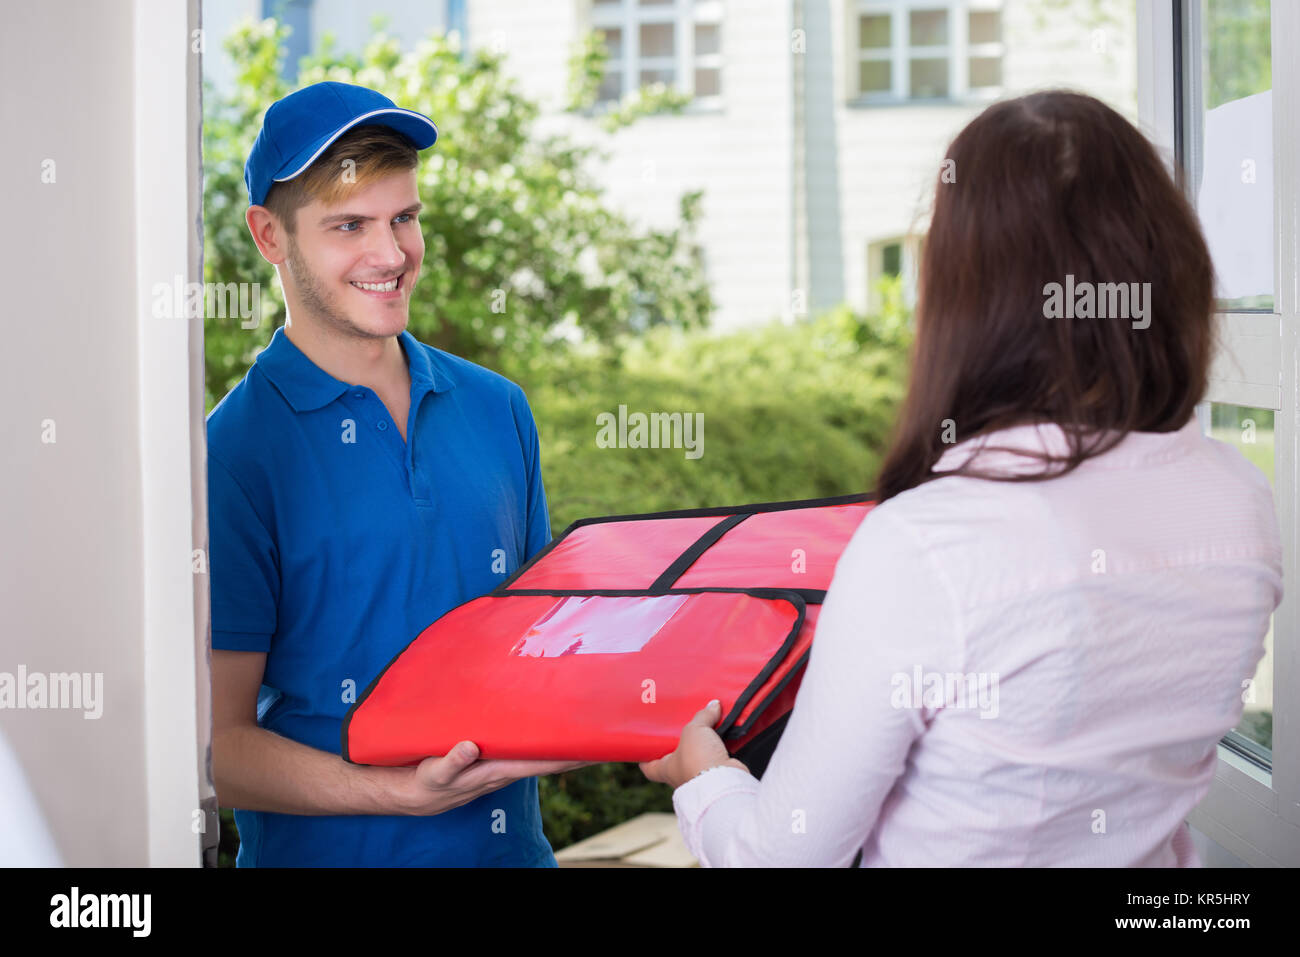 Man Delivering Pizza To Young Woman - Stock Image